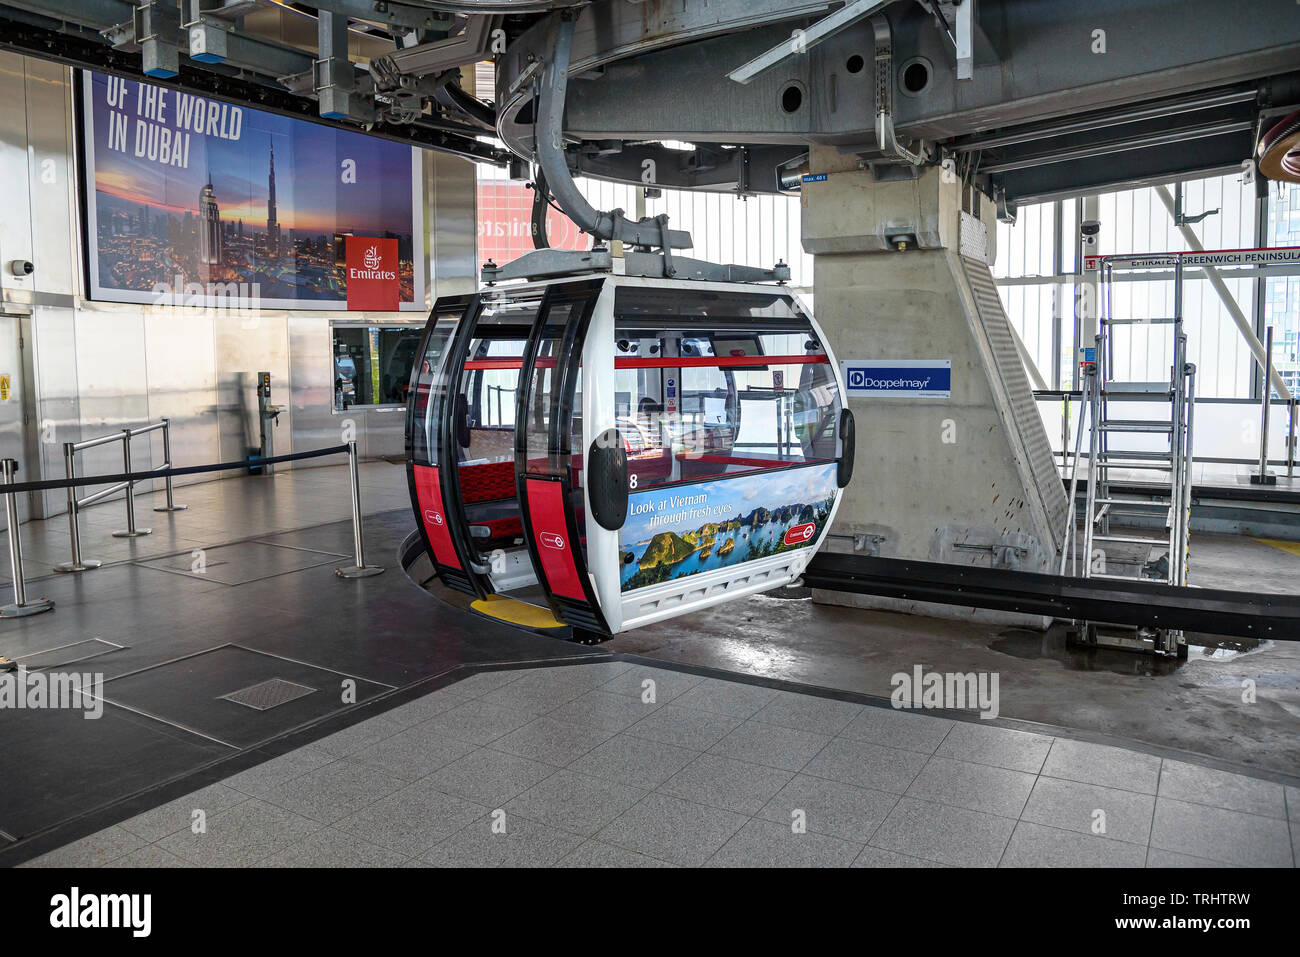 London, UK - May 1, 2018: Gondola of thr Emirates Airline cable car at the station on Greenwich Peninsula - Stock Image